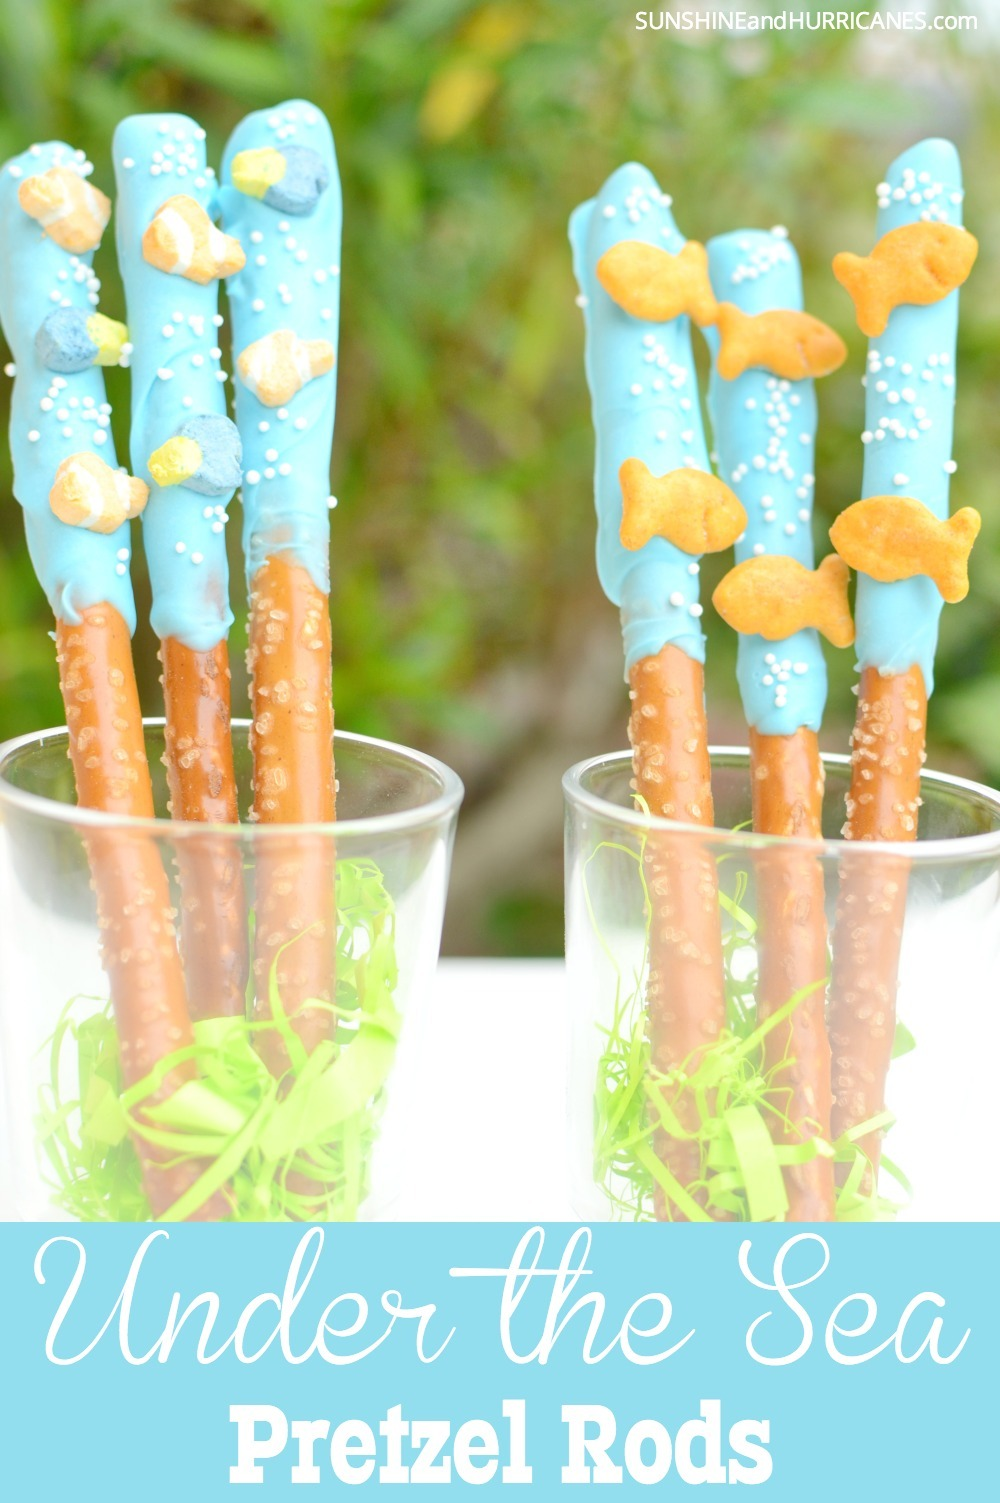 Looking for some fun snacks for a birthday party or pool party? These chocolate dipped pretzel rods are adorable and so easy to make. They'll be the hit of any celebration including a Finding Dory Birthday, Finding Nemo Birthday or Even and Under the Sea themed get together. Finding Dory Snack from SunshineandHurricanes.com